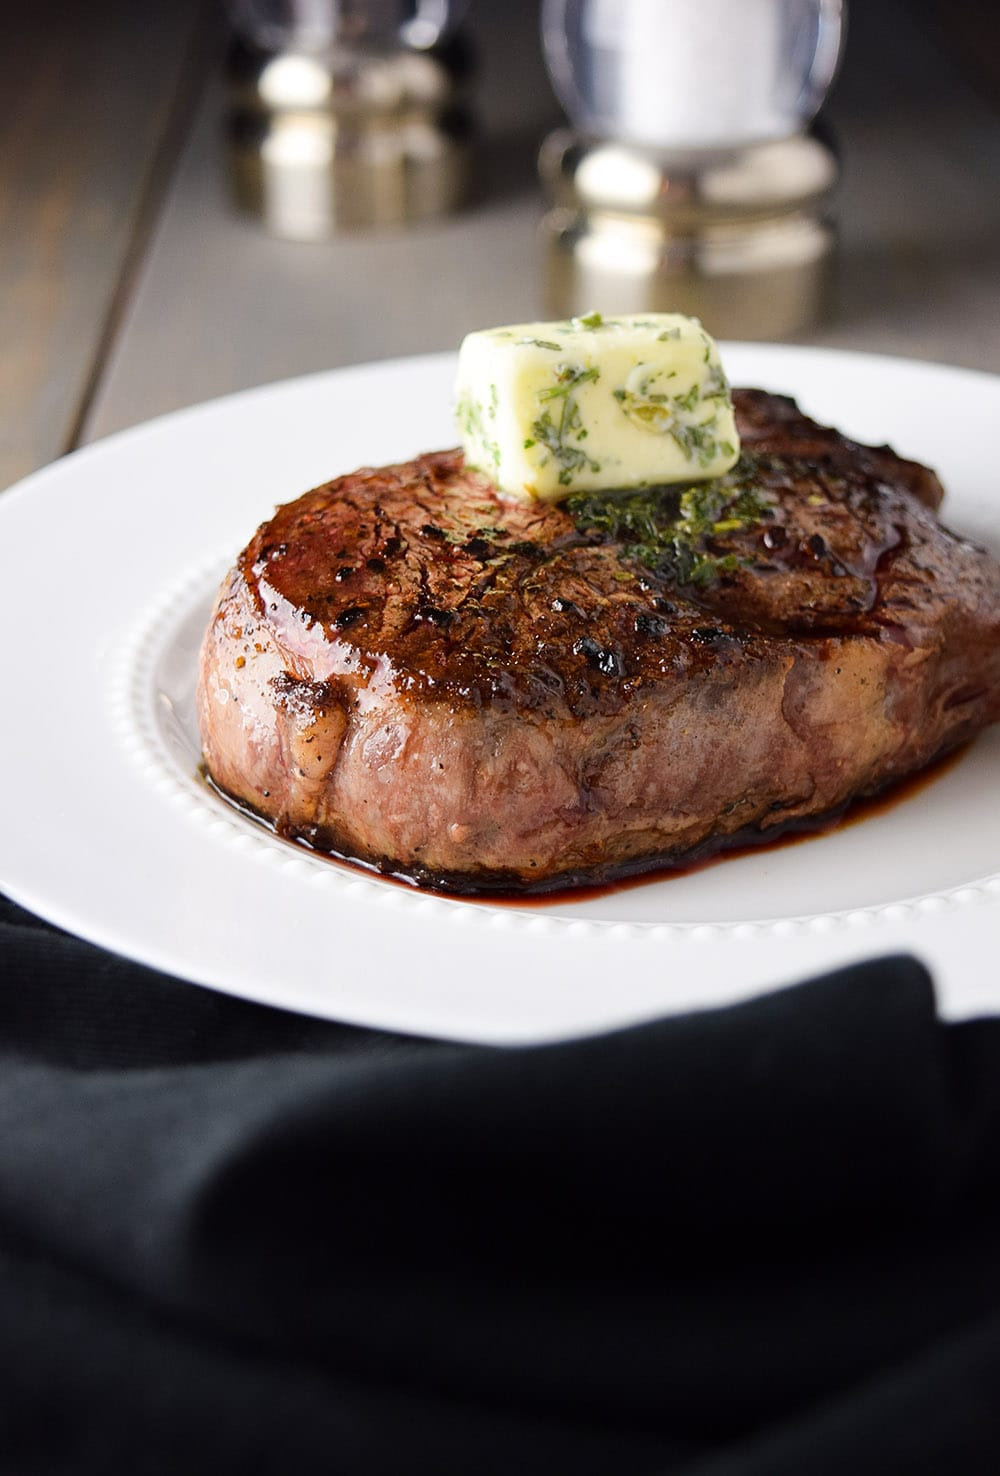 Pan-seared filet mignon recipe with garlic & berb butter